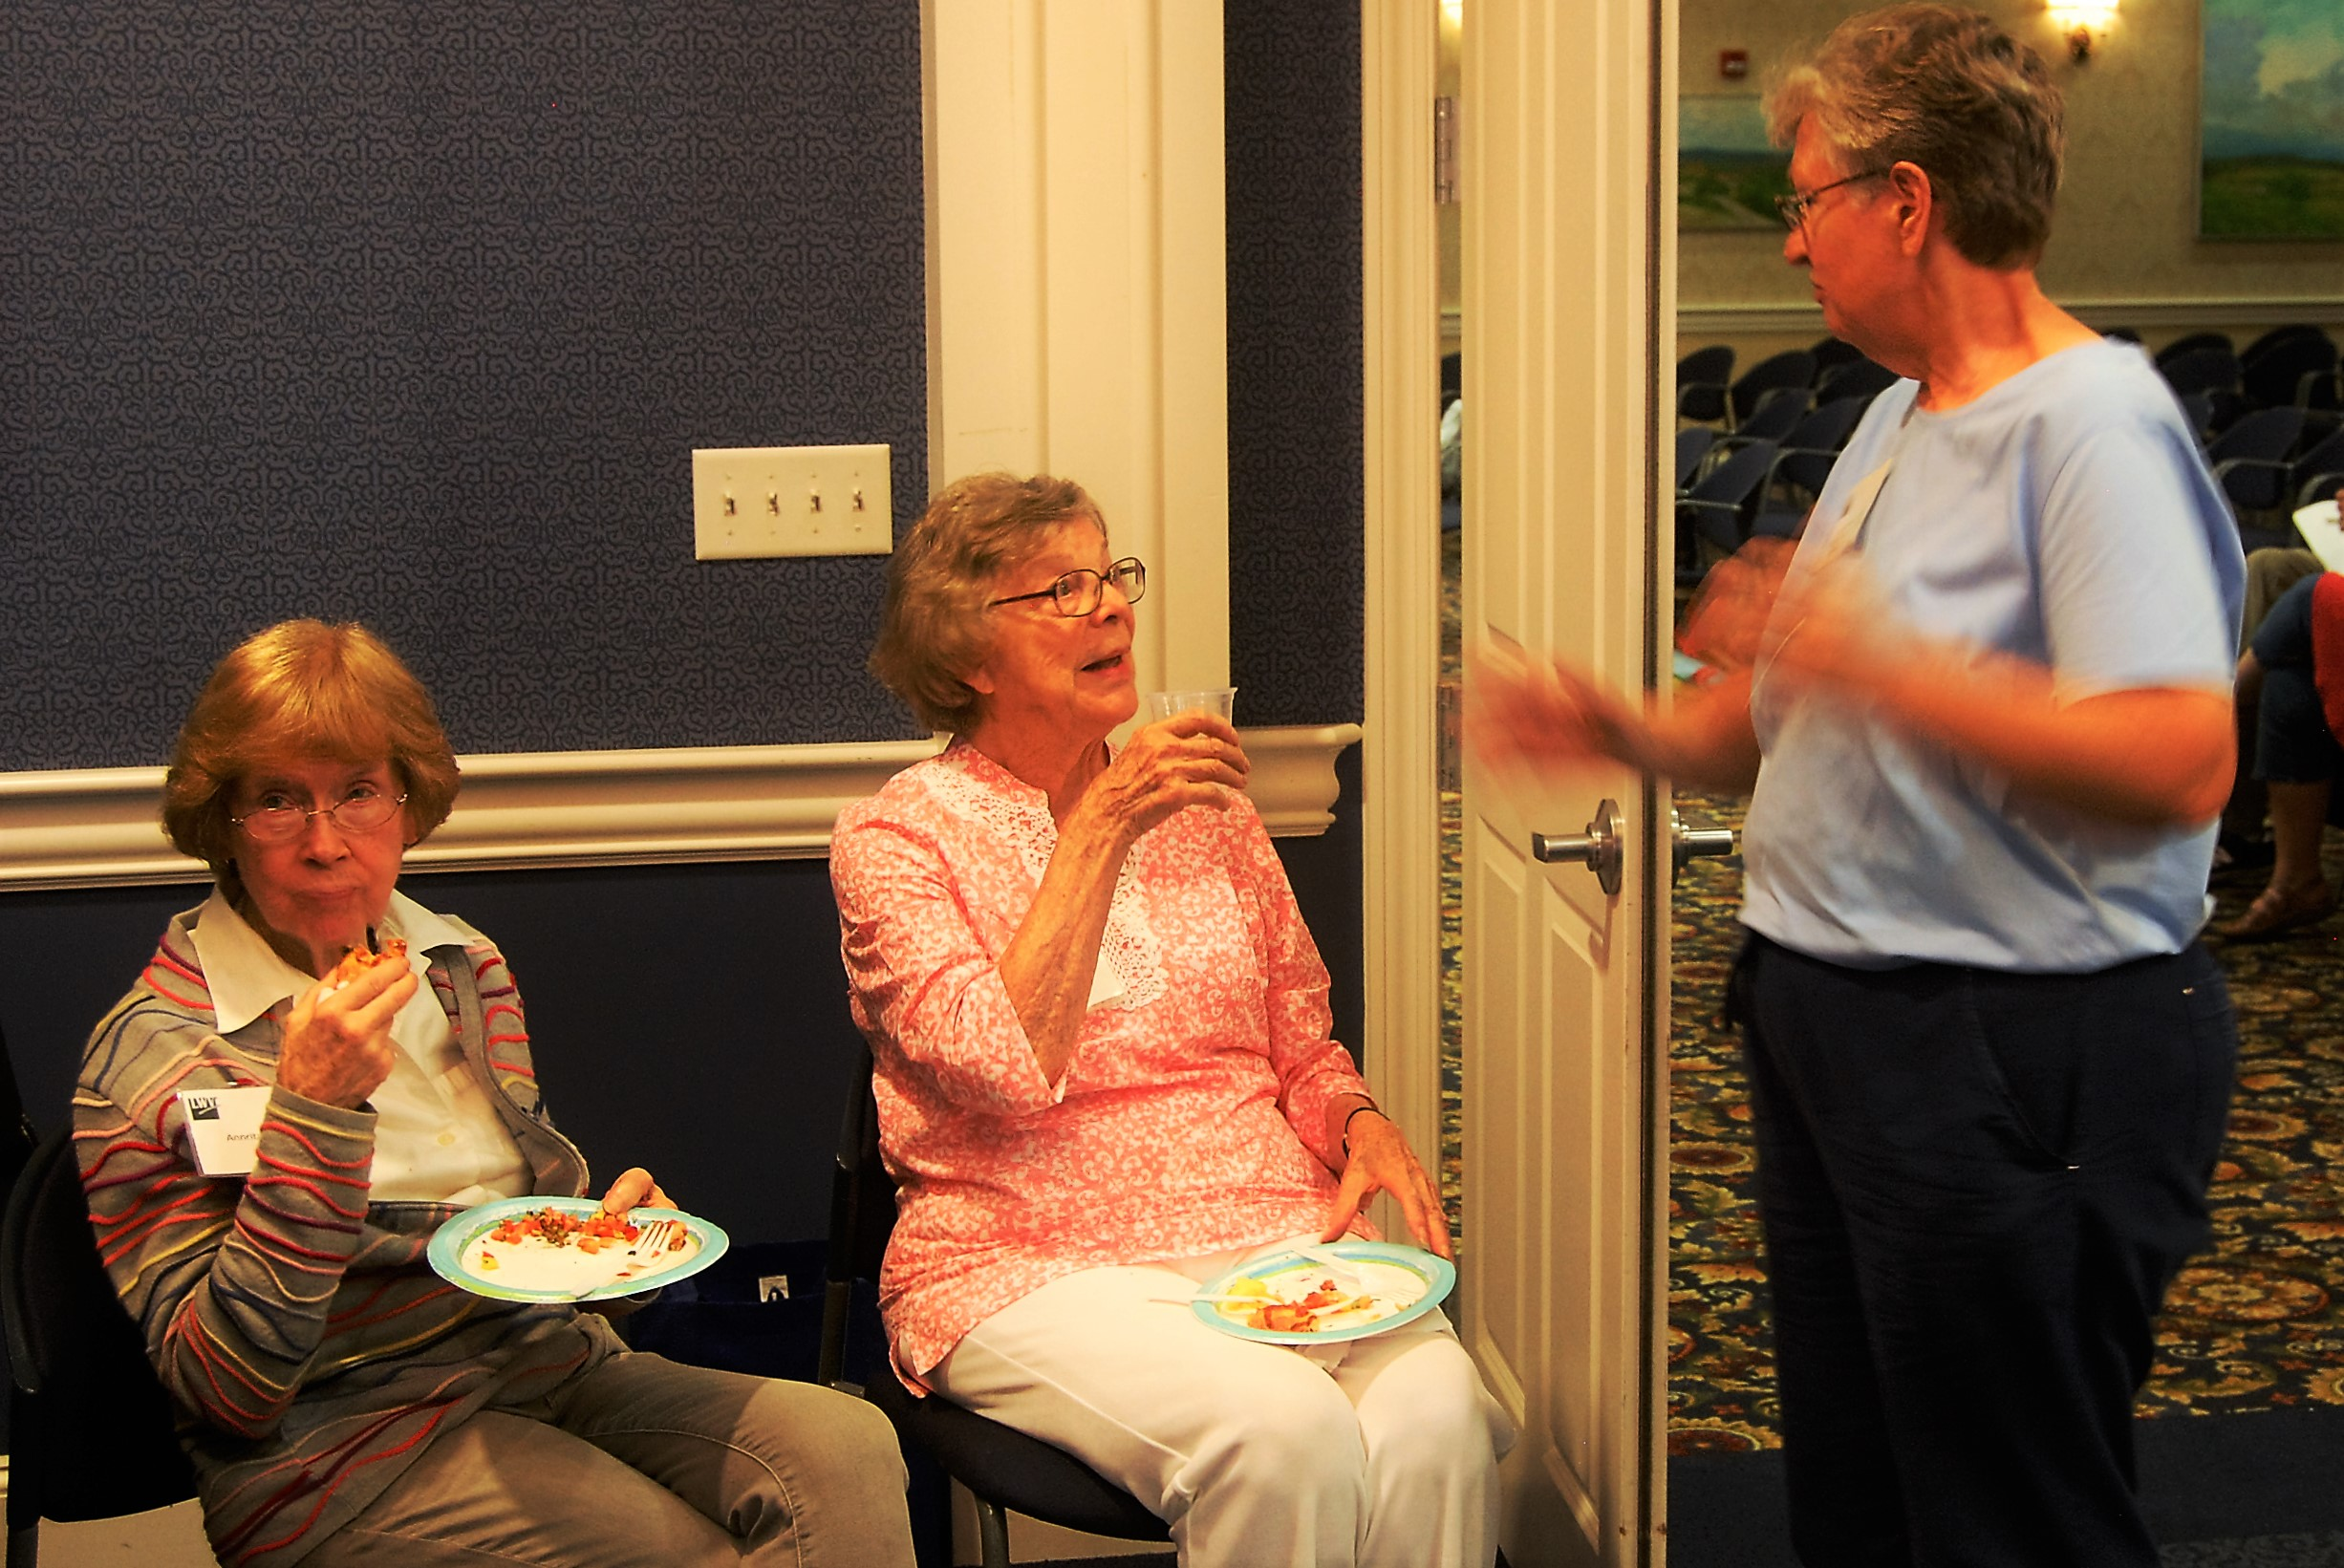 The annual open house is a chance for members to reacquaint over snacks.